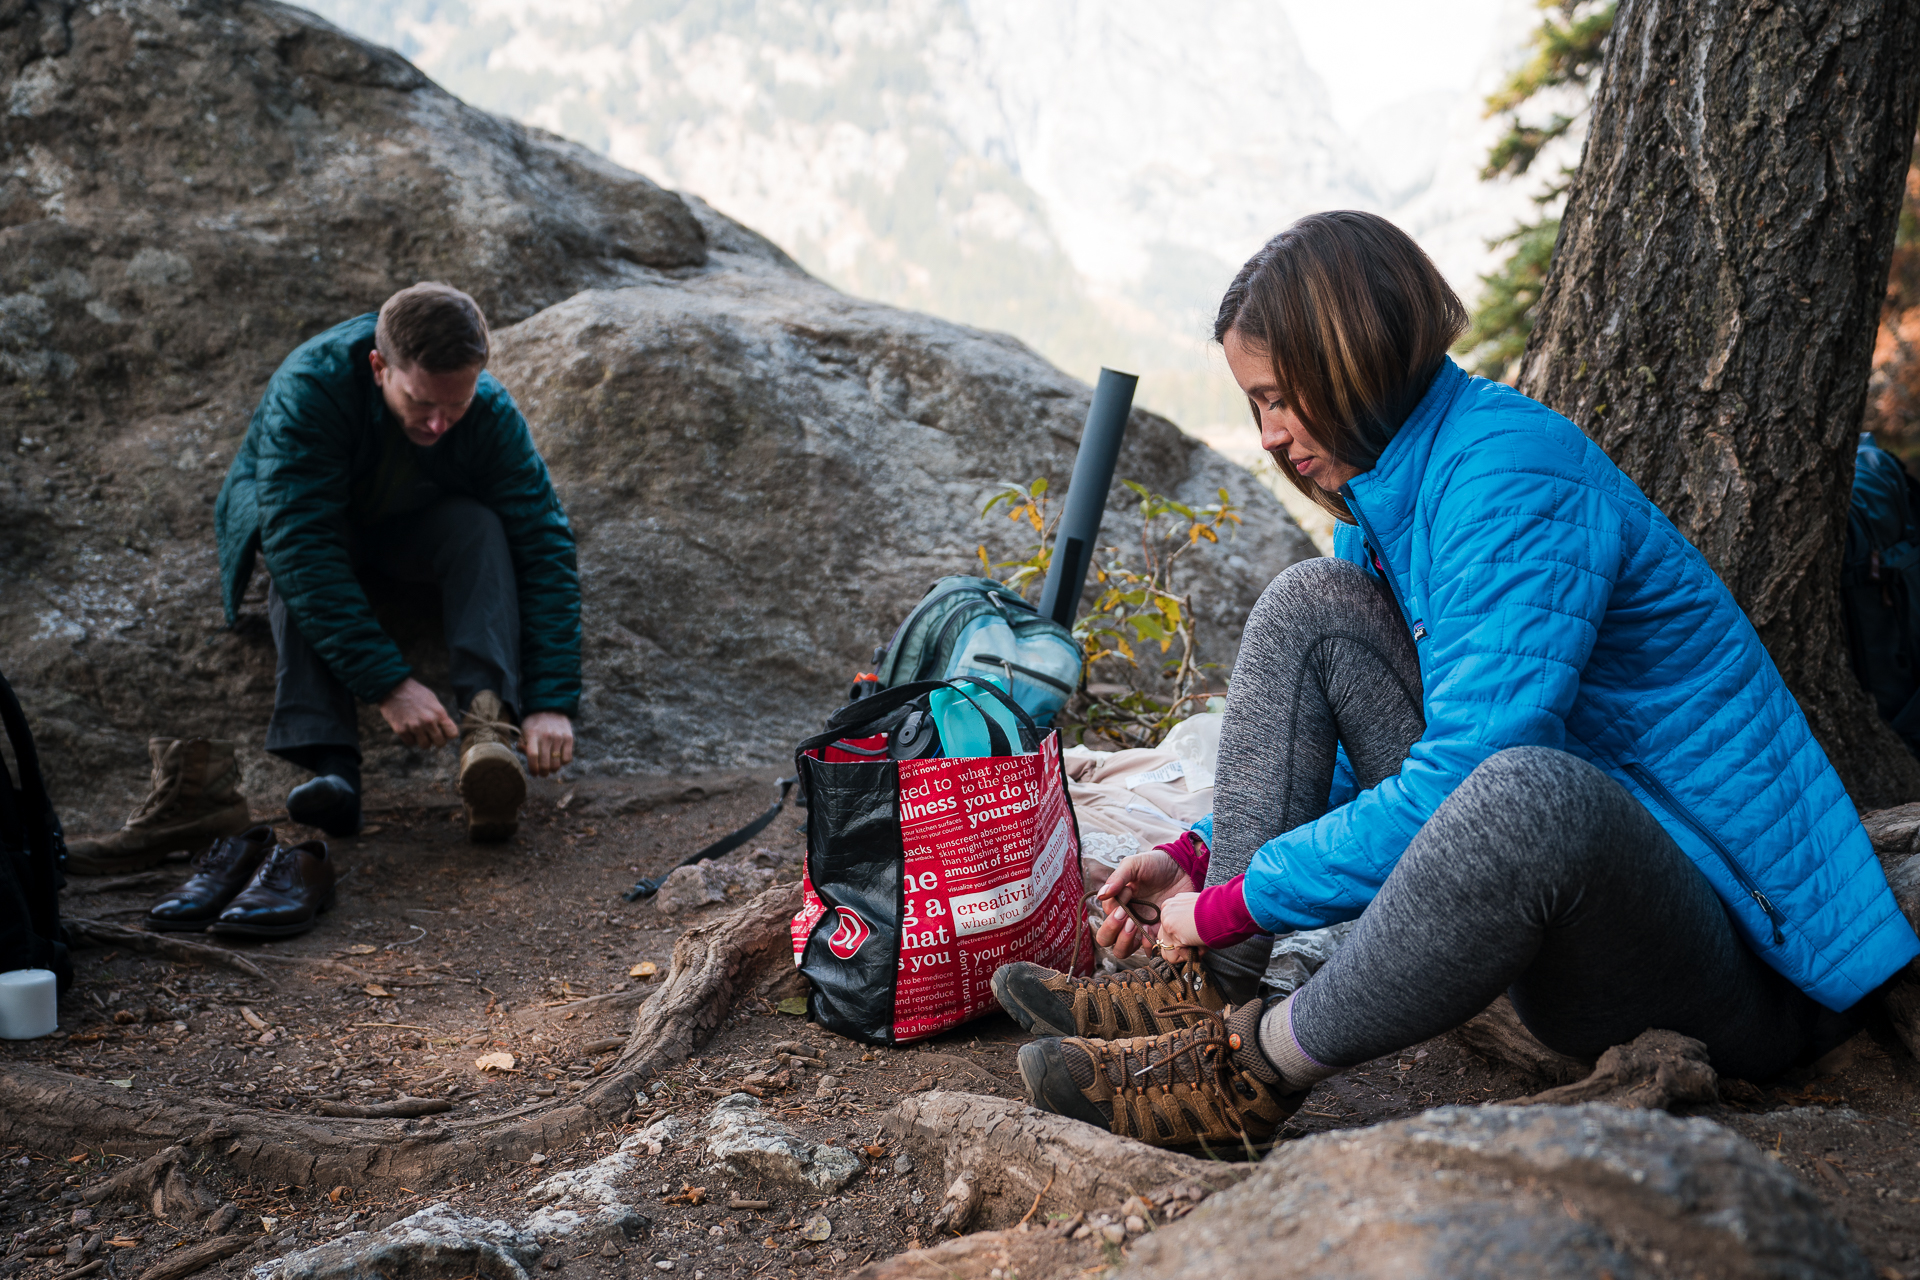 Grand Teton National Park Intimate Elopement Picture | The couple changing out of their wedding attire to start hiking out